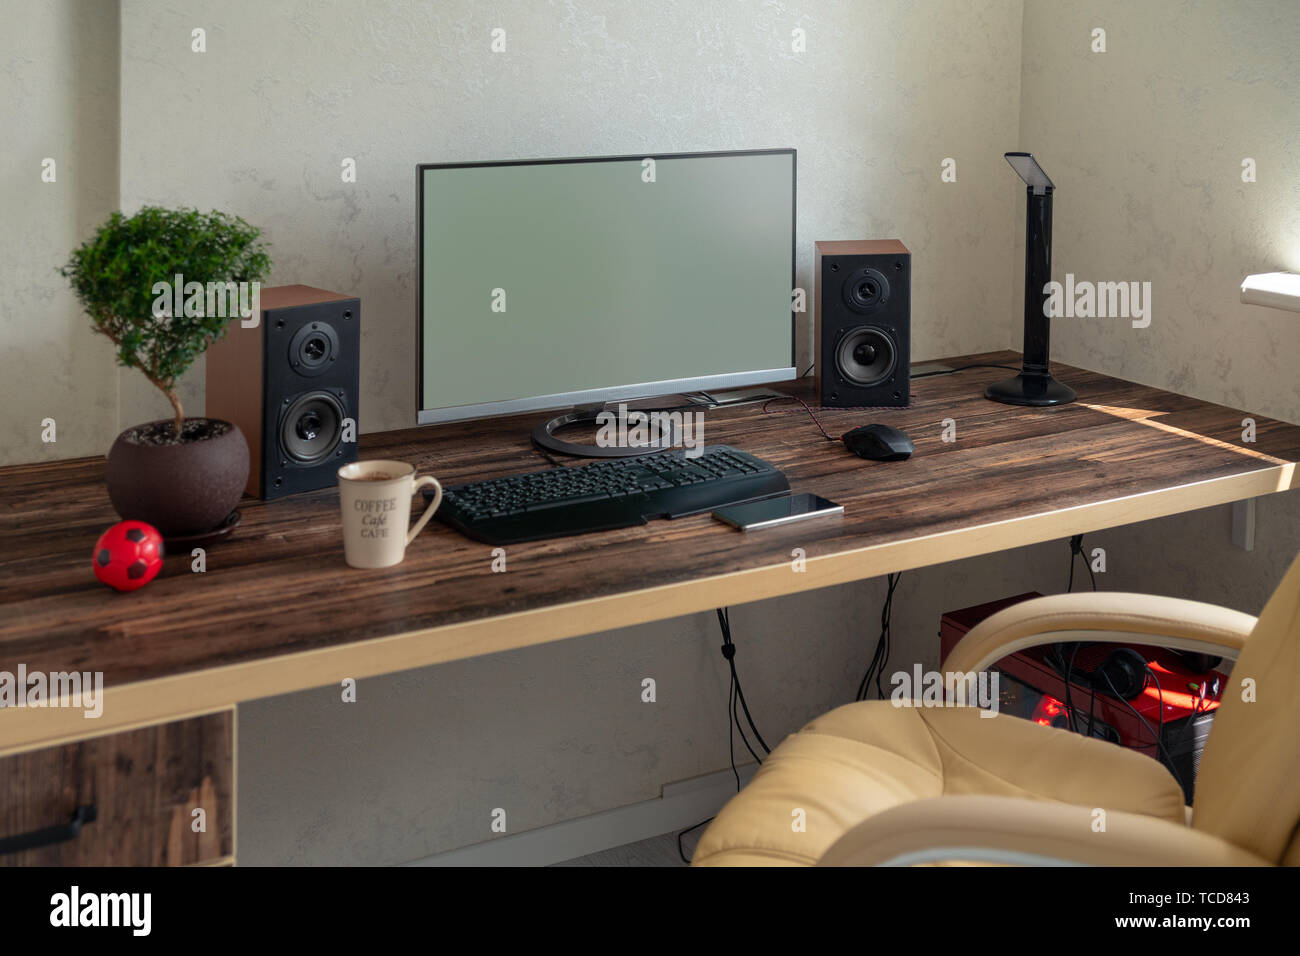 Empty Office With Large Desktop Computer Monitor Speakers And Bonsai On A Wooden Desk With Mobile Phone Stock Photo Alamy